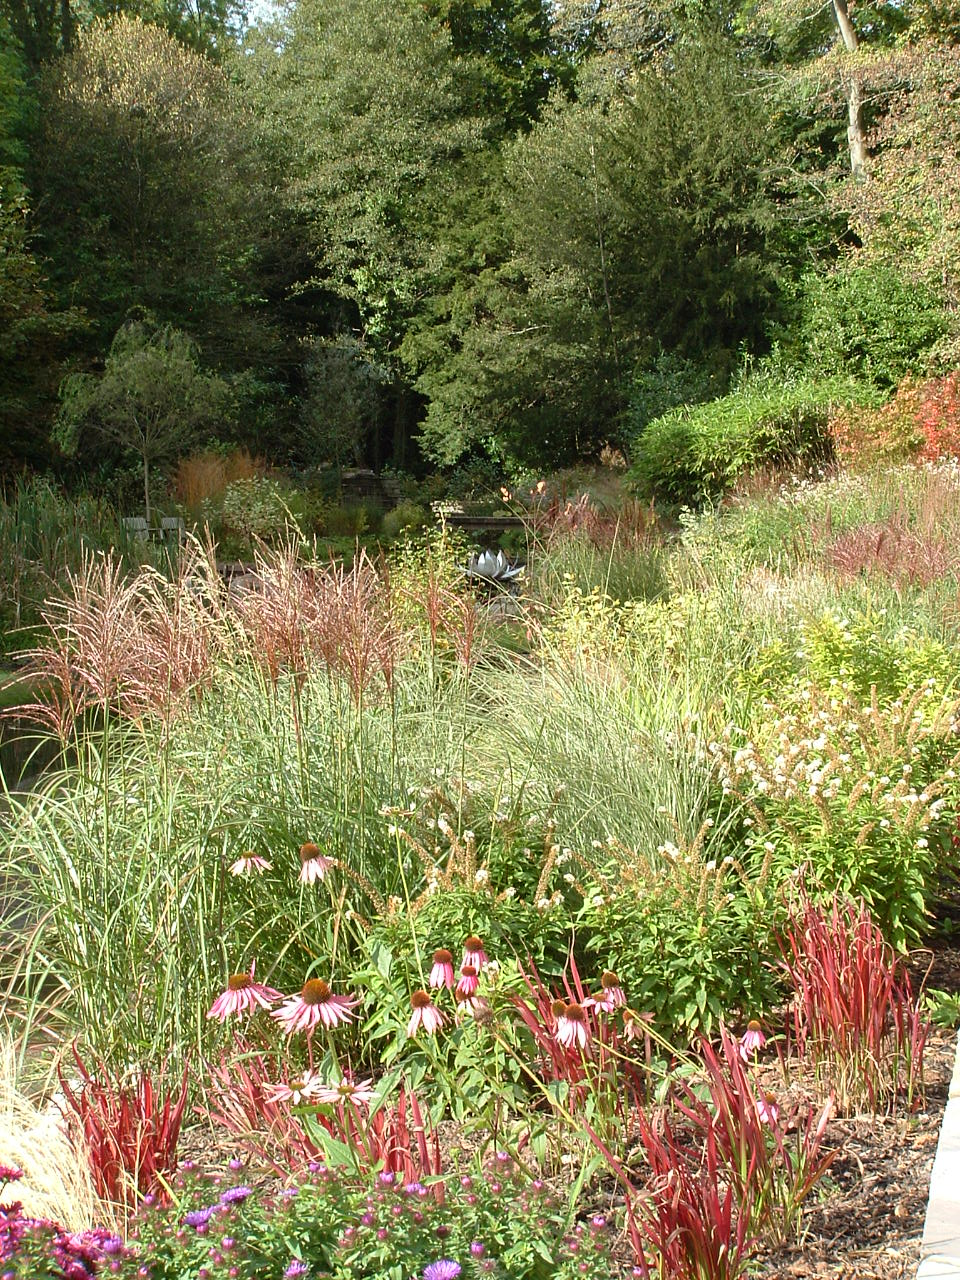 Large swathes of ornamental grasses, Miscanthus and Panicum species,colour brilliantly in autumn and blend in tones of red and pink with Echinacea purpurea